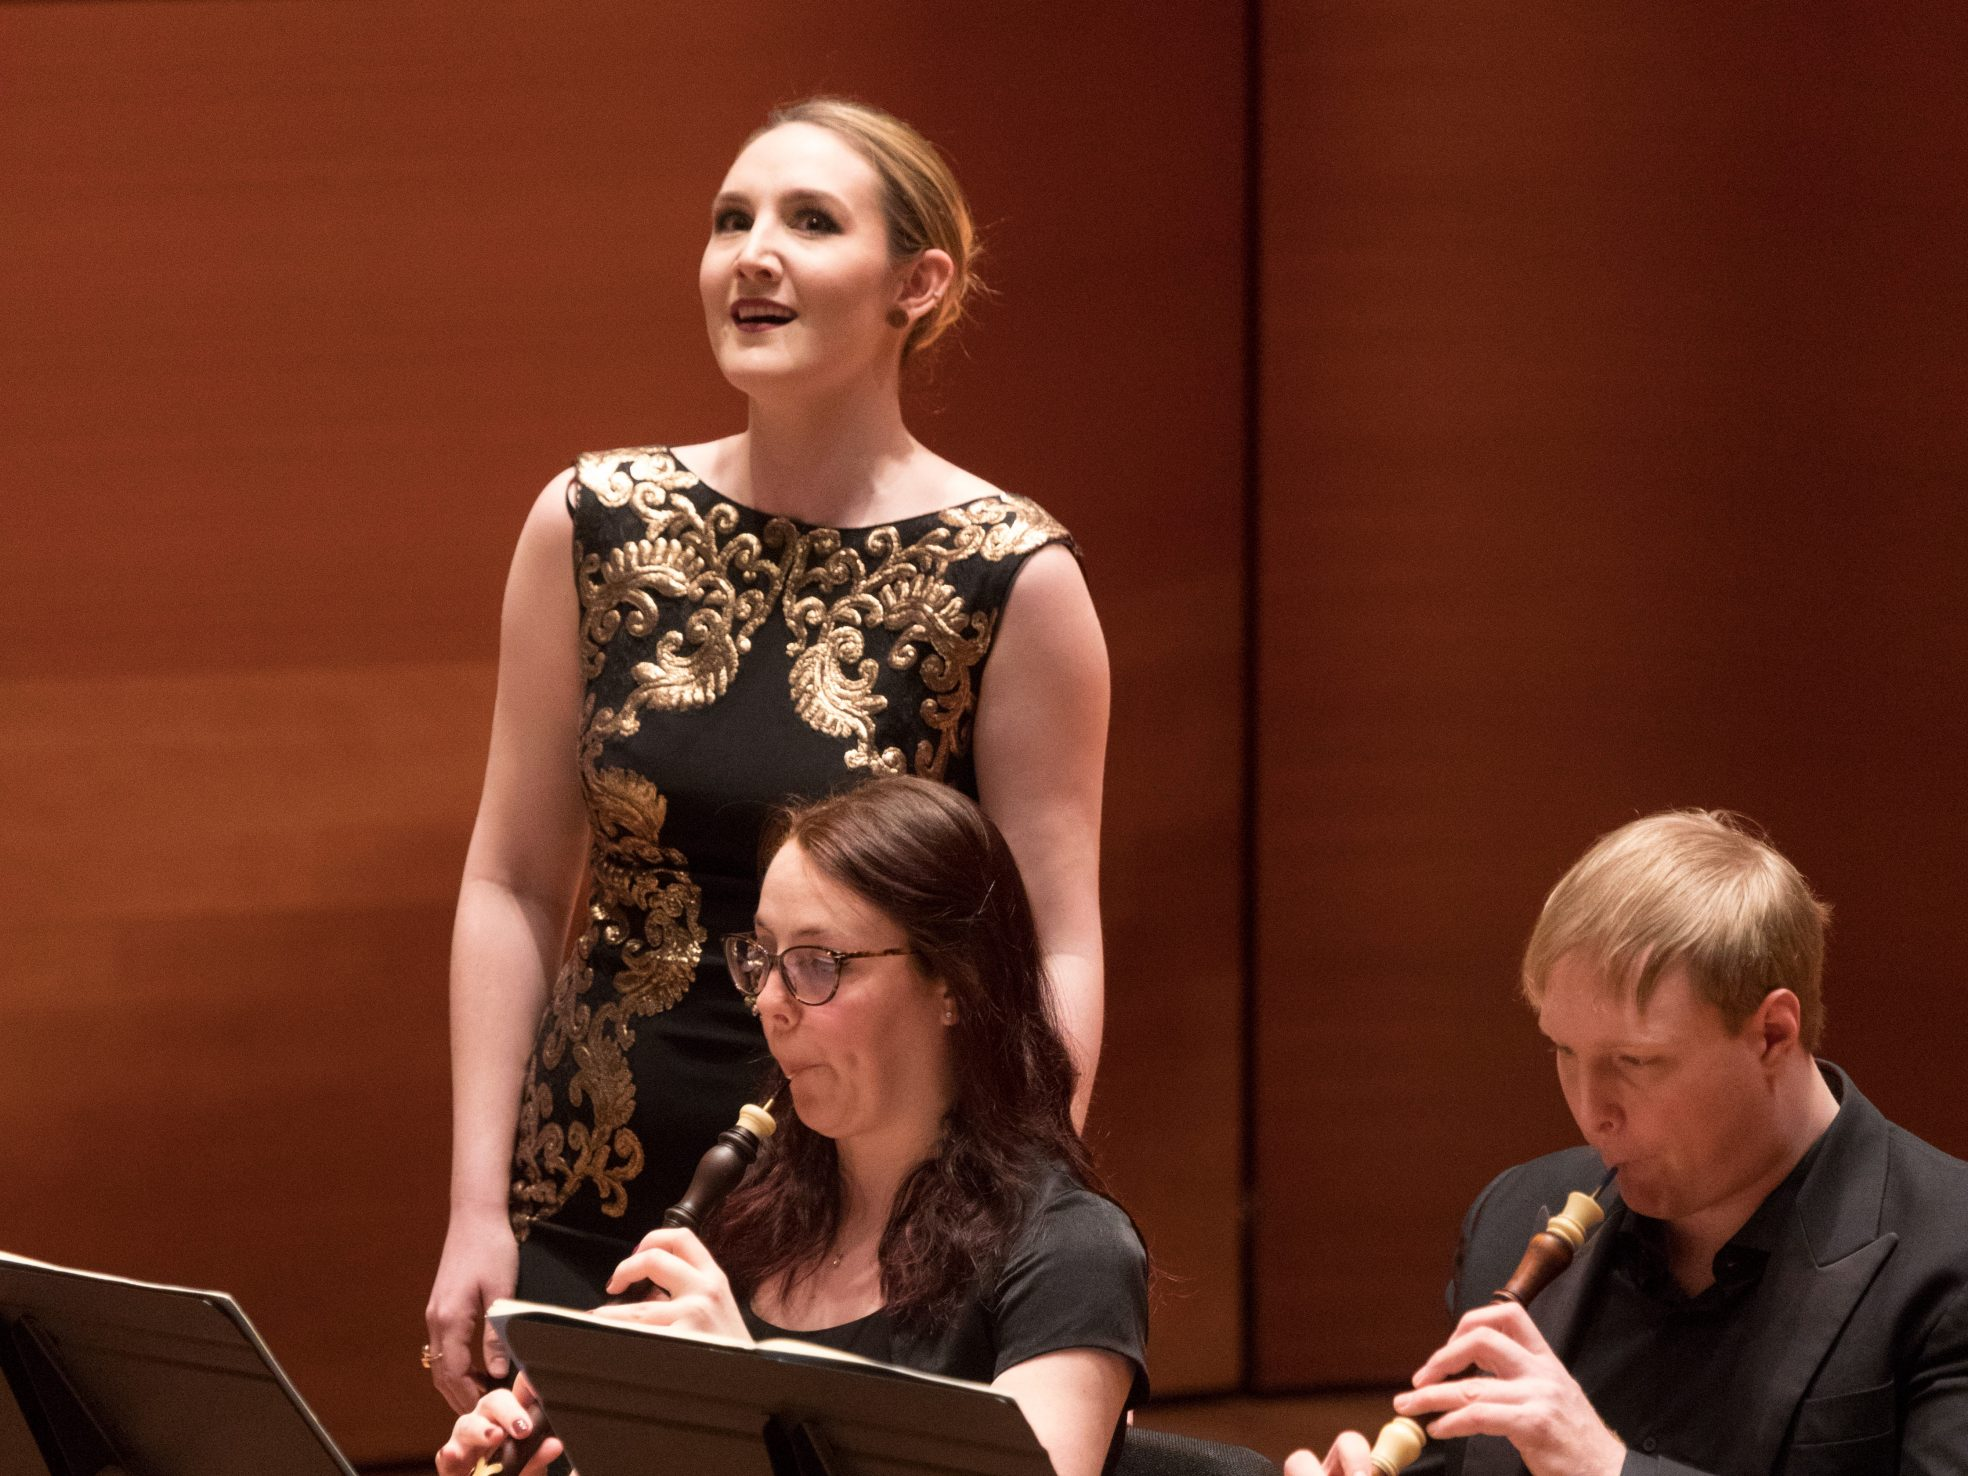 Dido and Aeneas with Juilliard